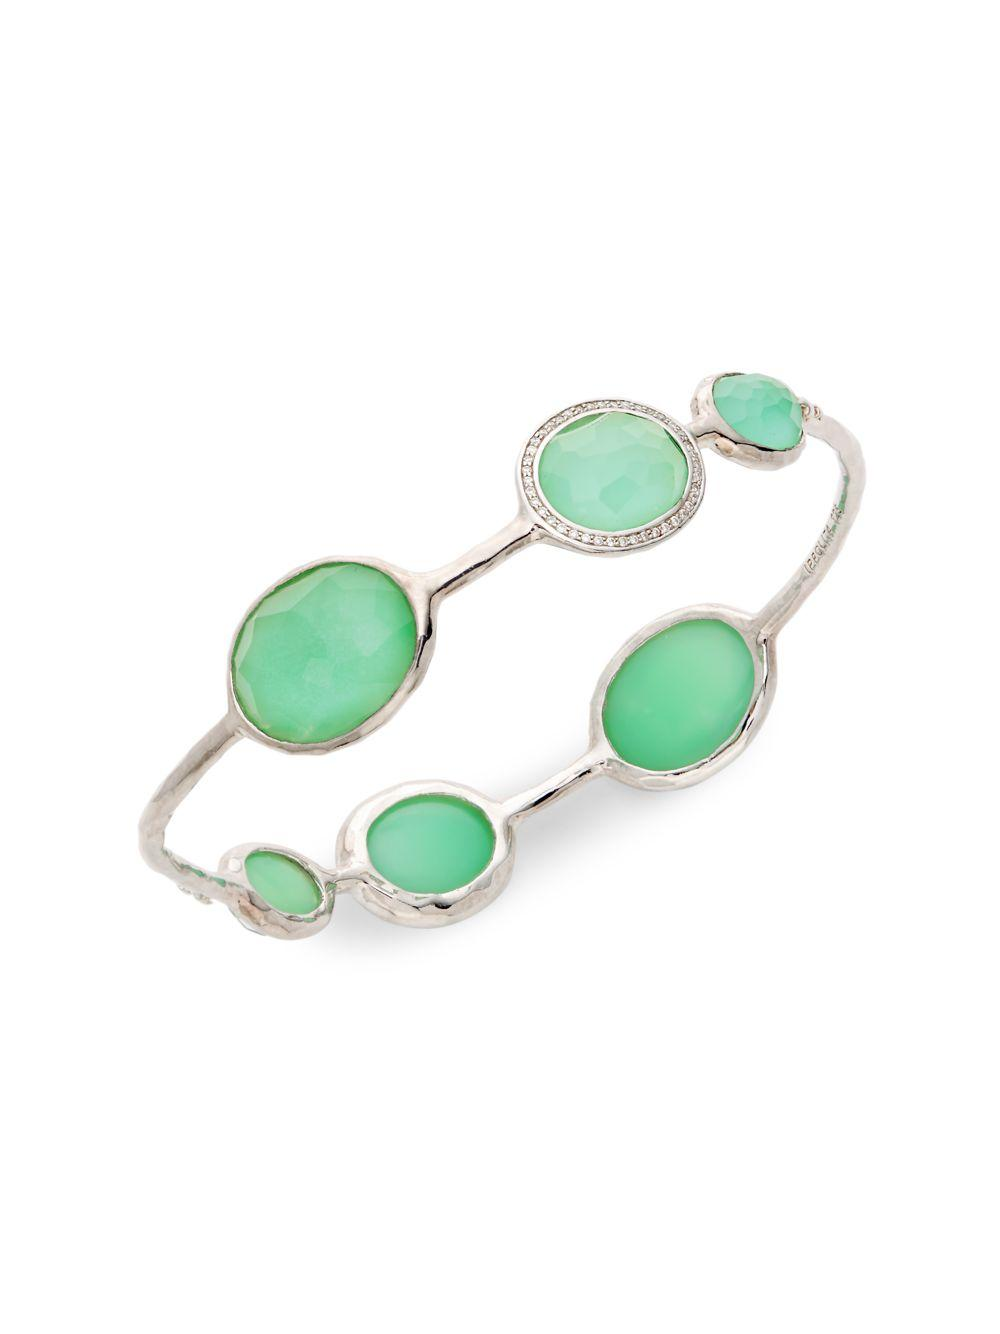 5b6ddce3890 Ippolita. Women's Metallic Lollipop Sterling Silver Clear Quartz &  Chrysoprase Diamond Bangle Bracelet